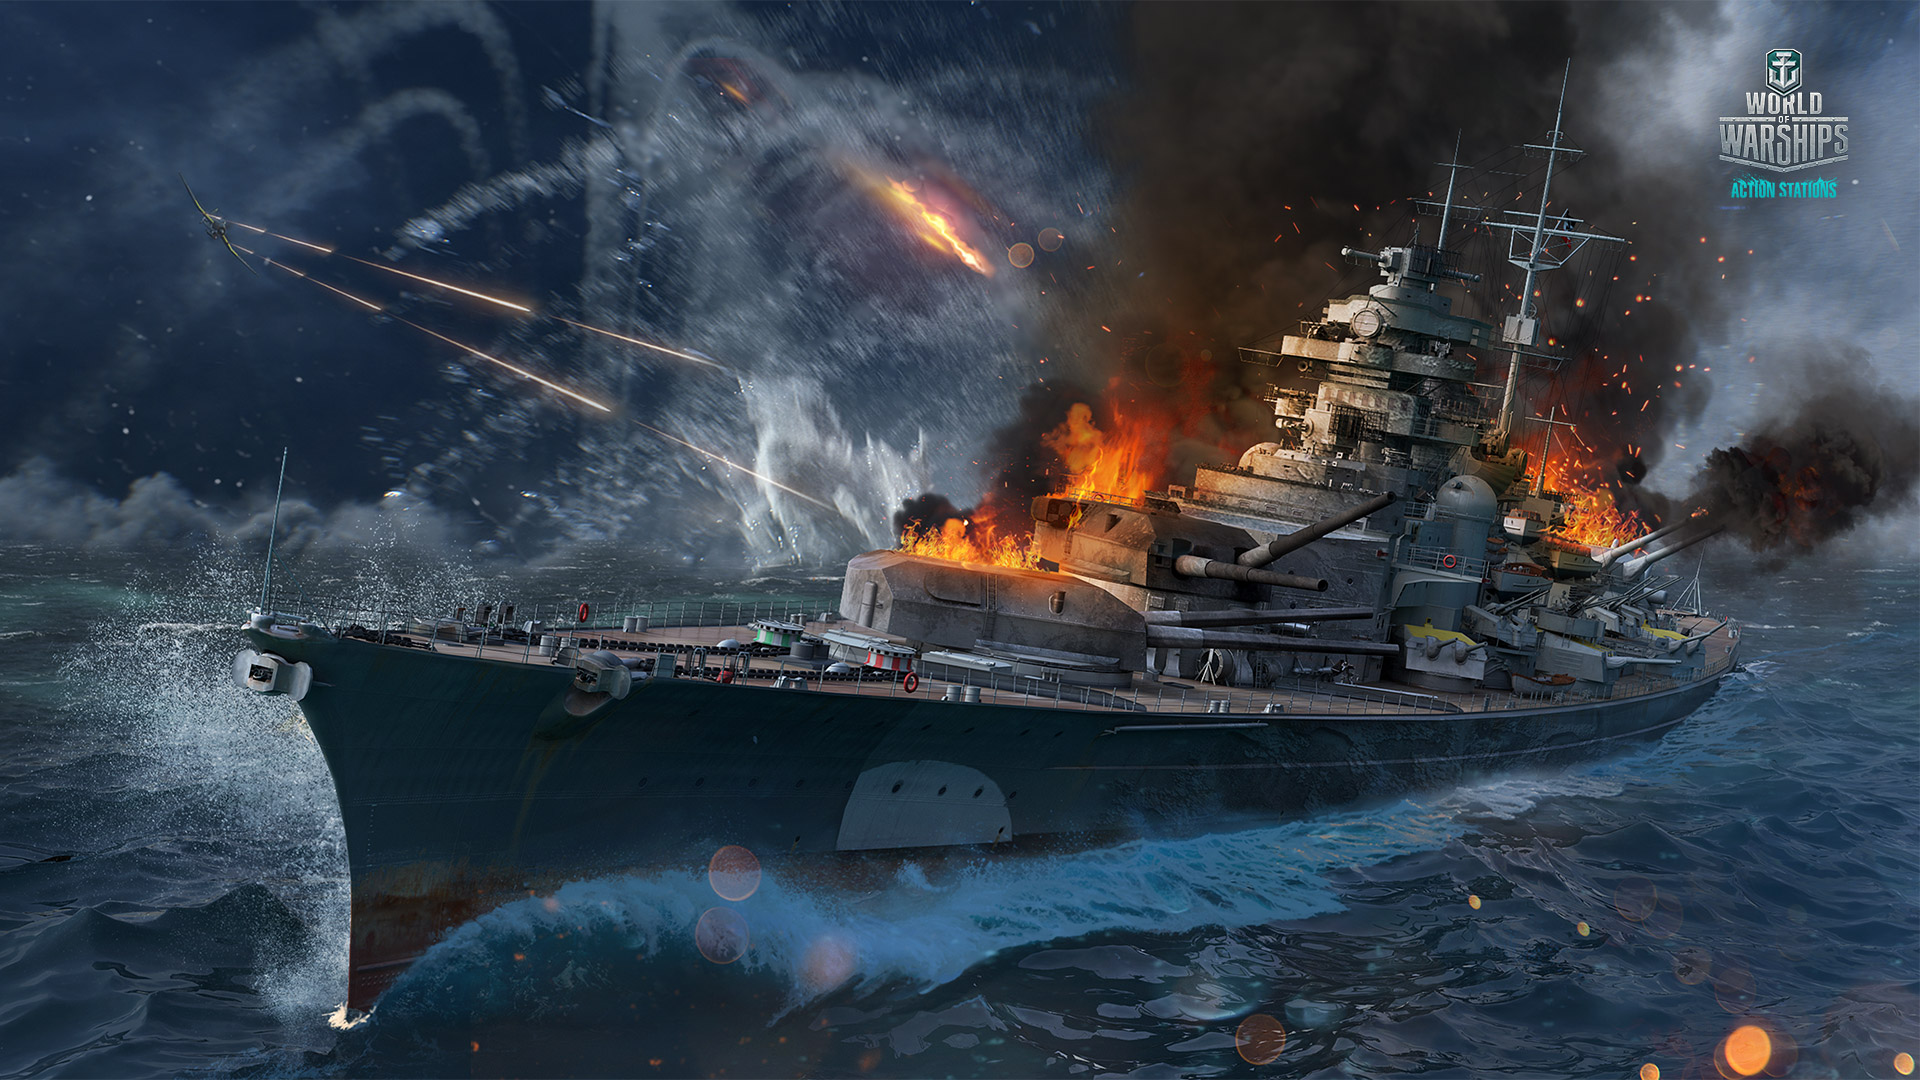 World-of-warships-kampagne-01